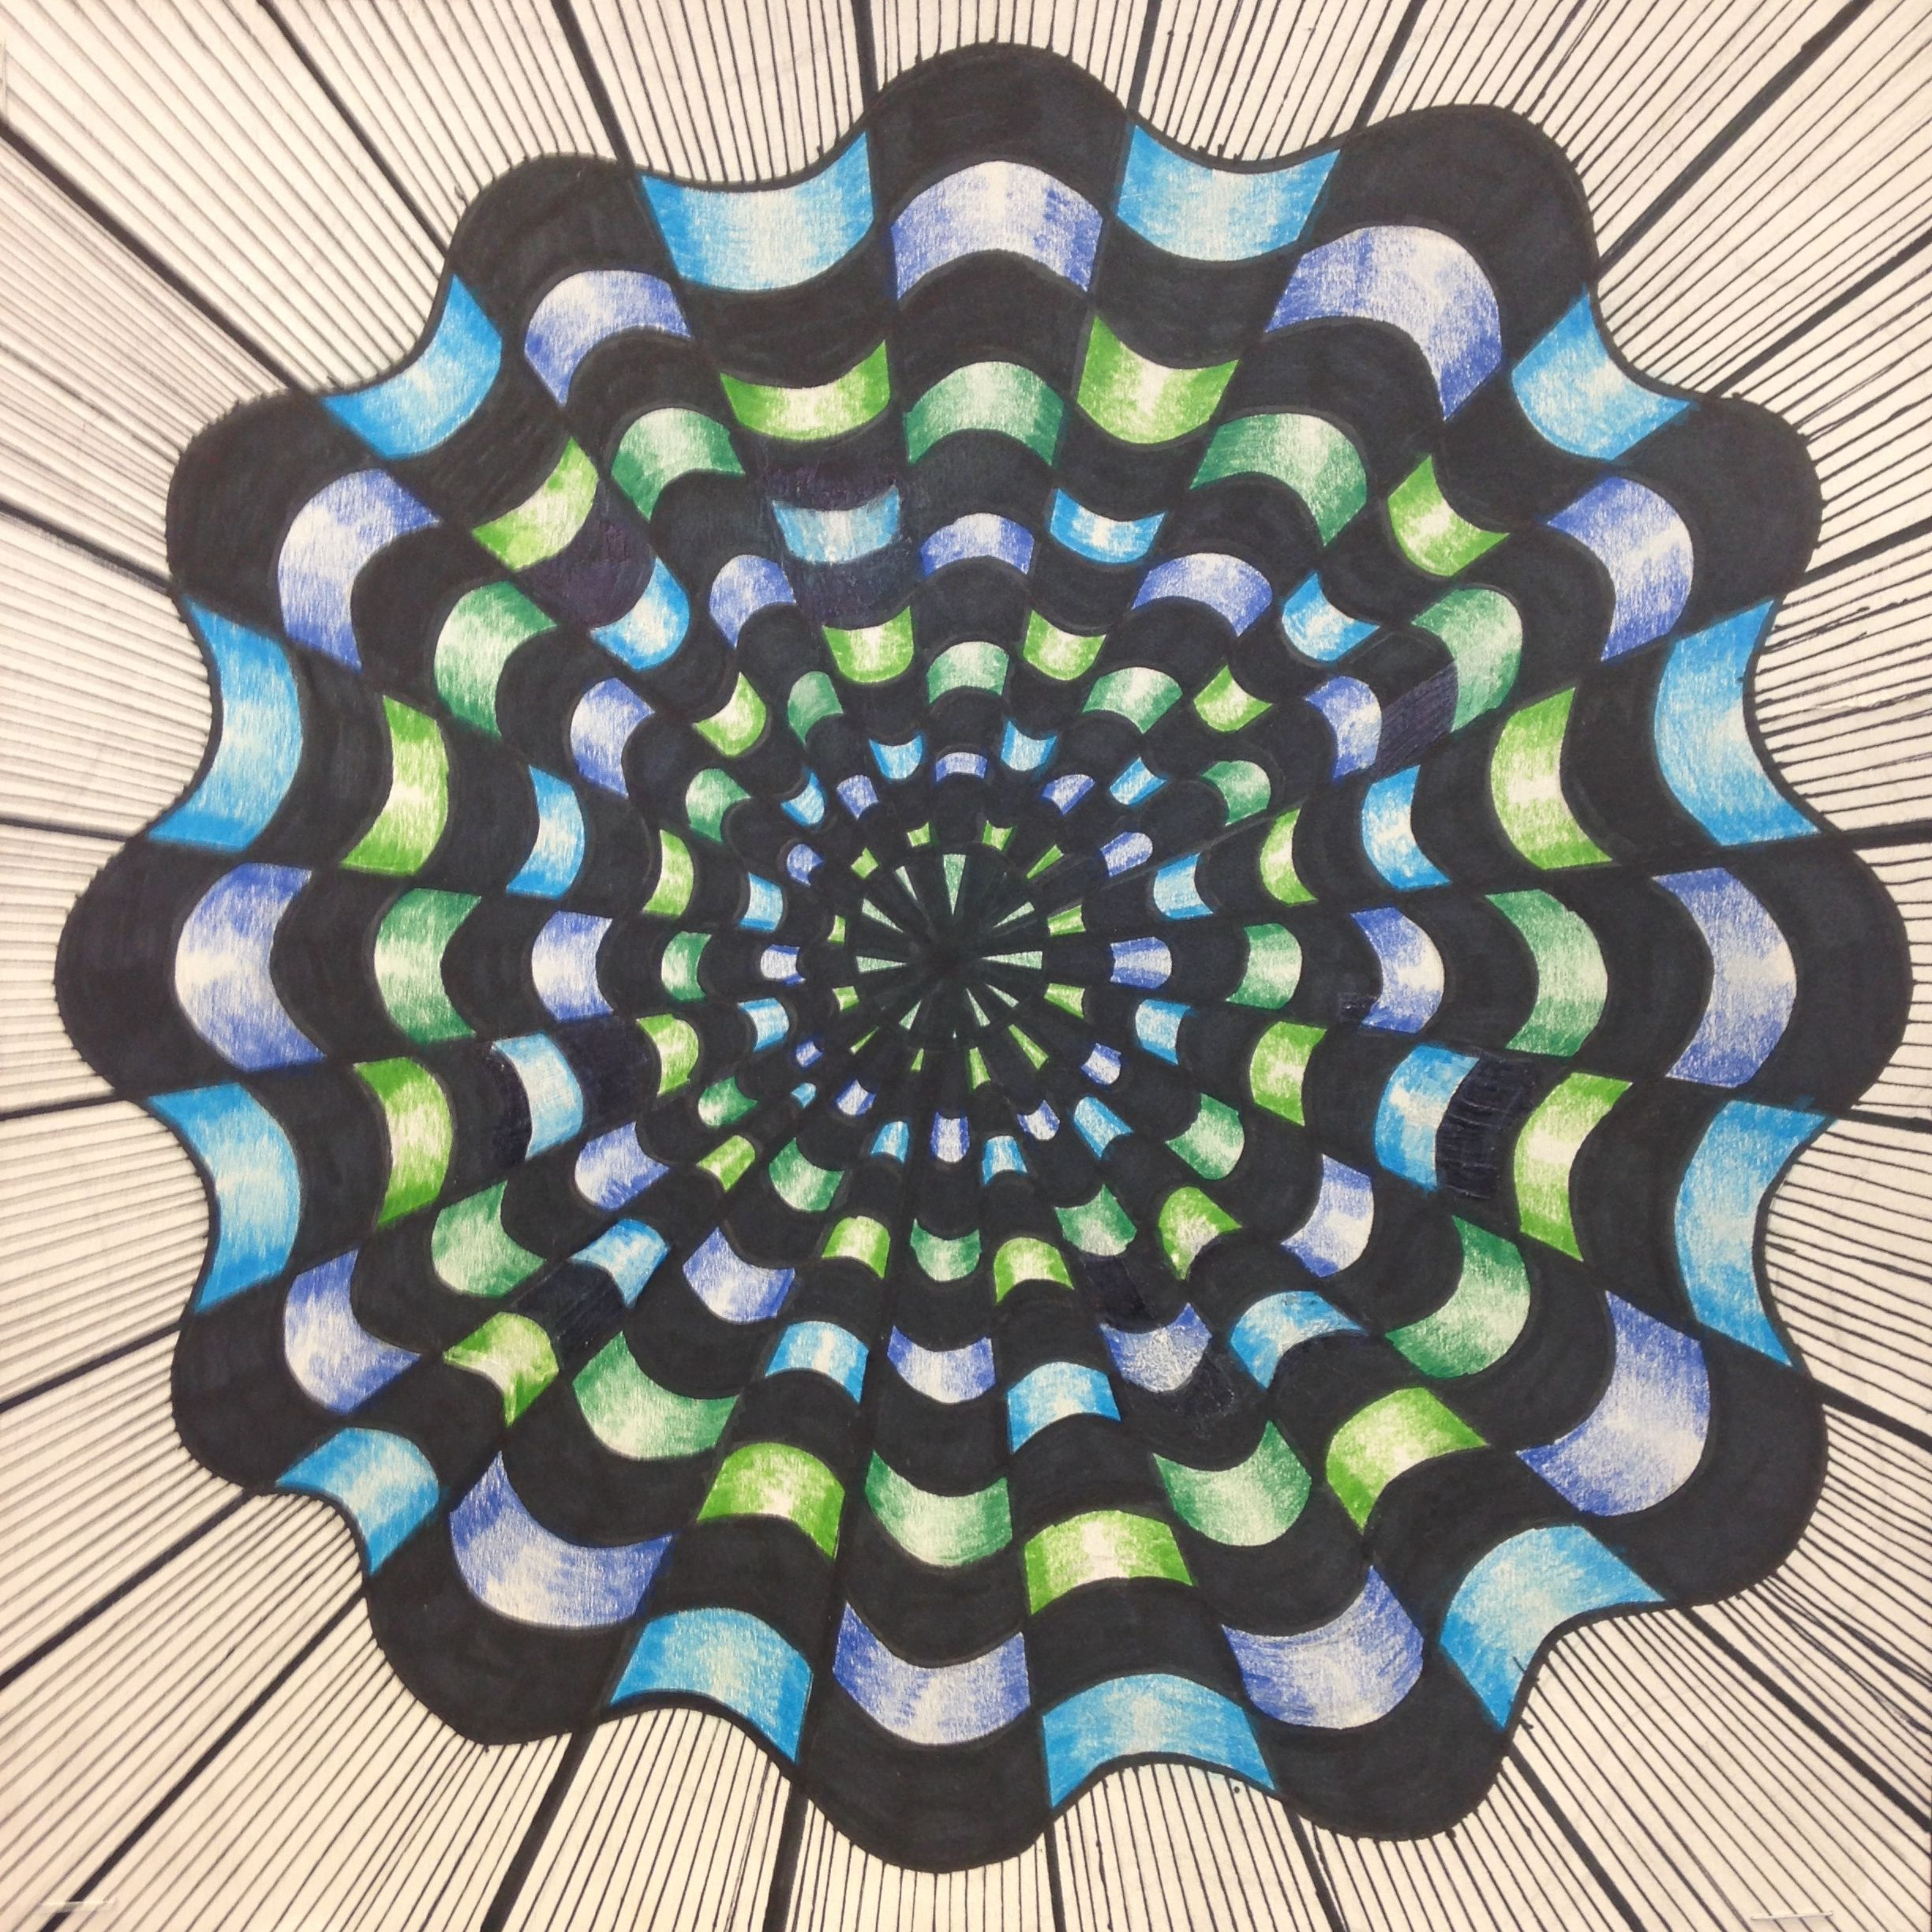 Pin By Lily Watson On Optical Illusions In